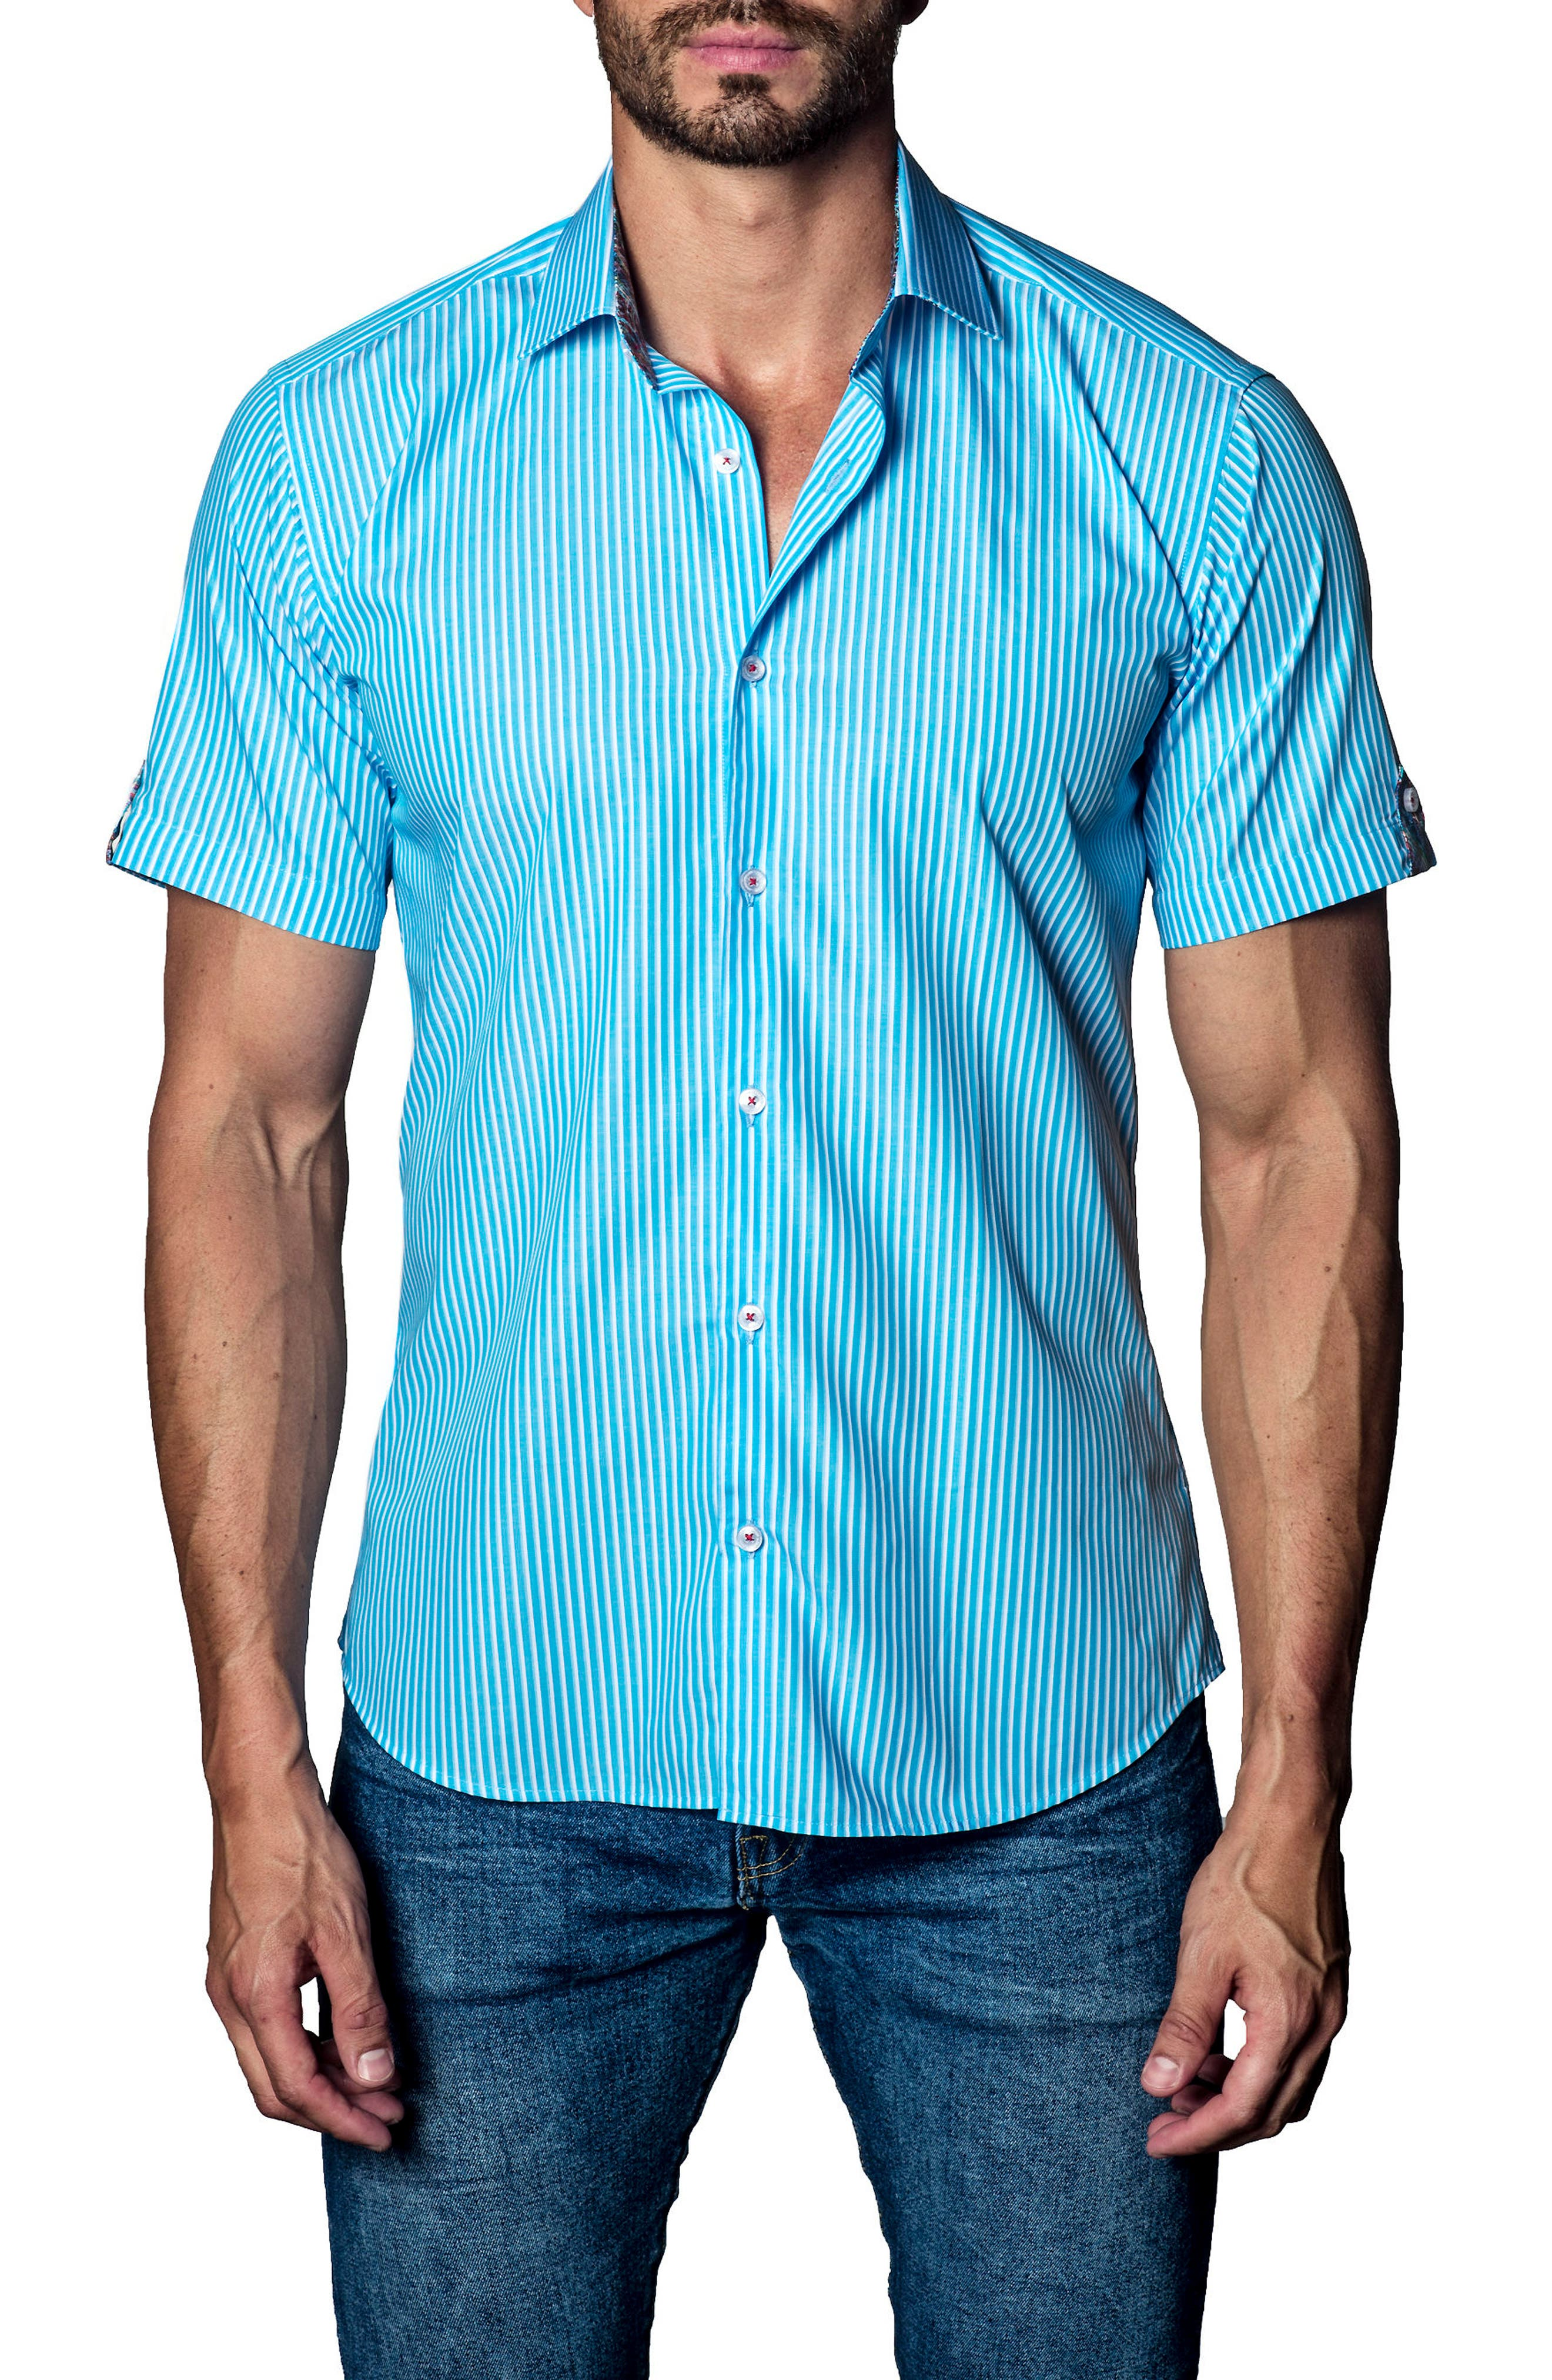 Stripe Sport Shirt,                             Main thumbnail 1, color,                             Blue / White Stripe